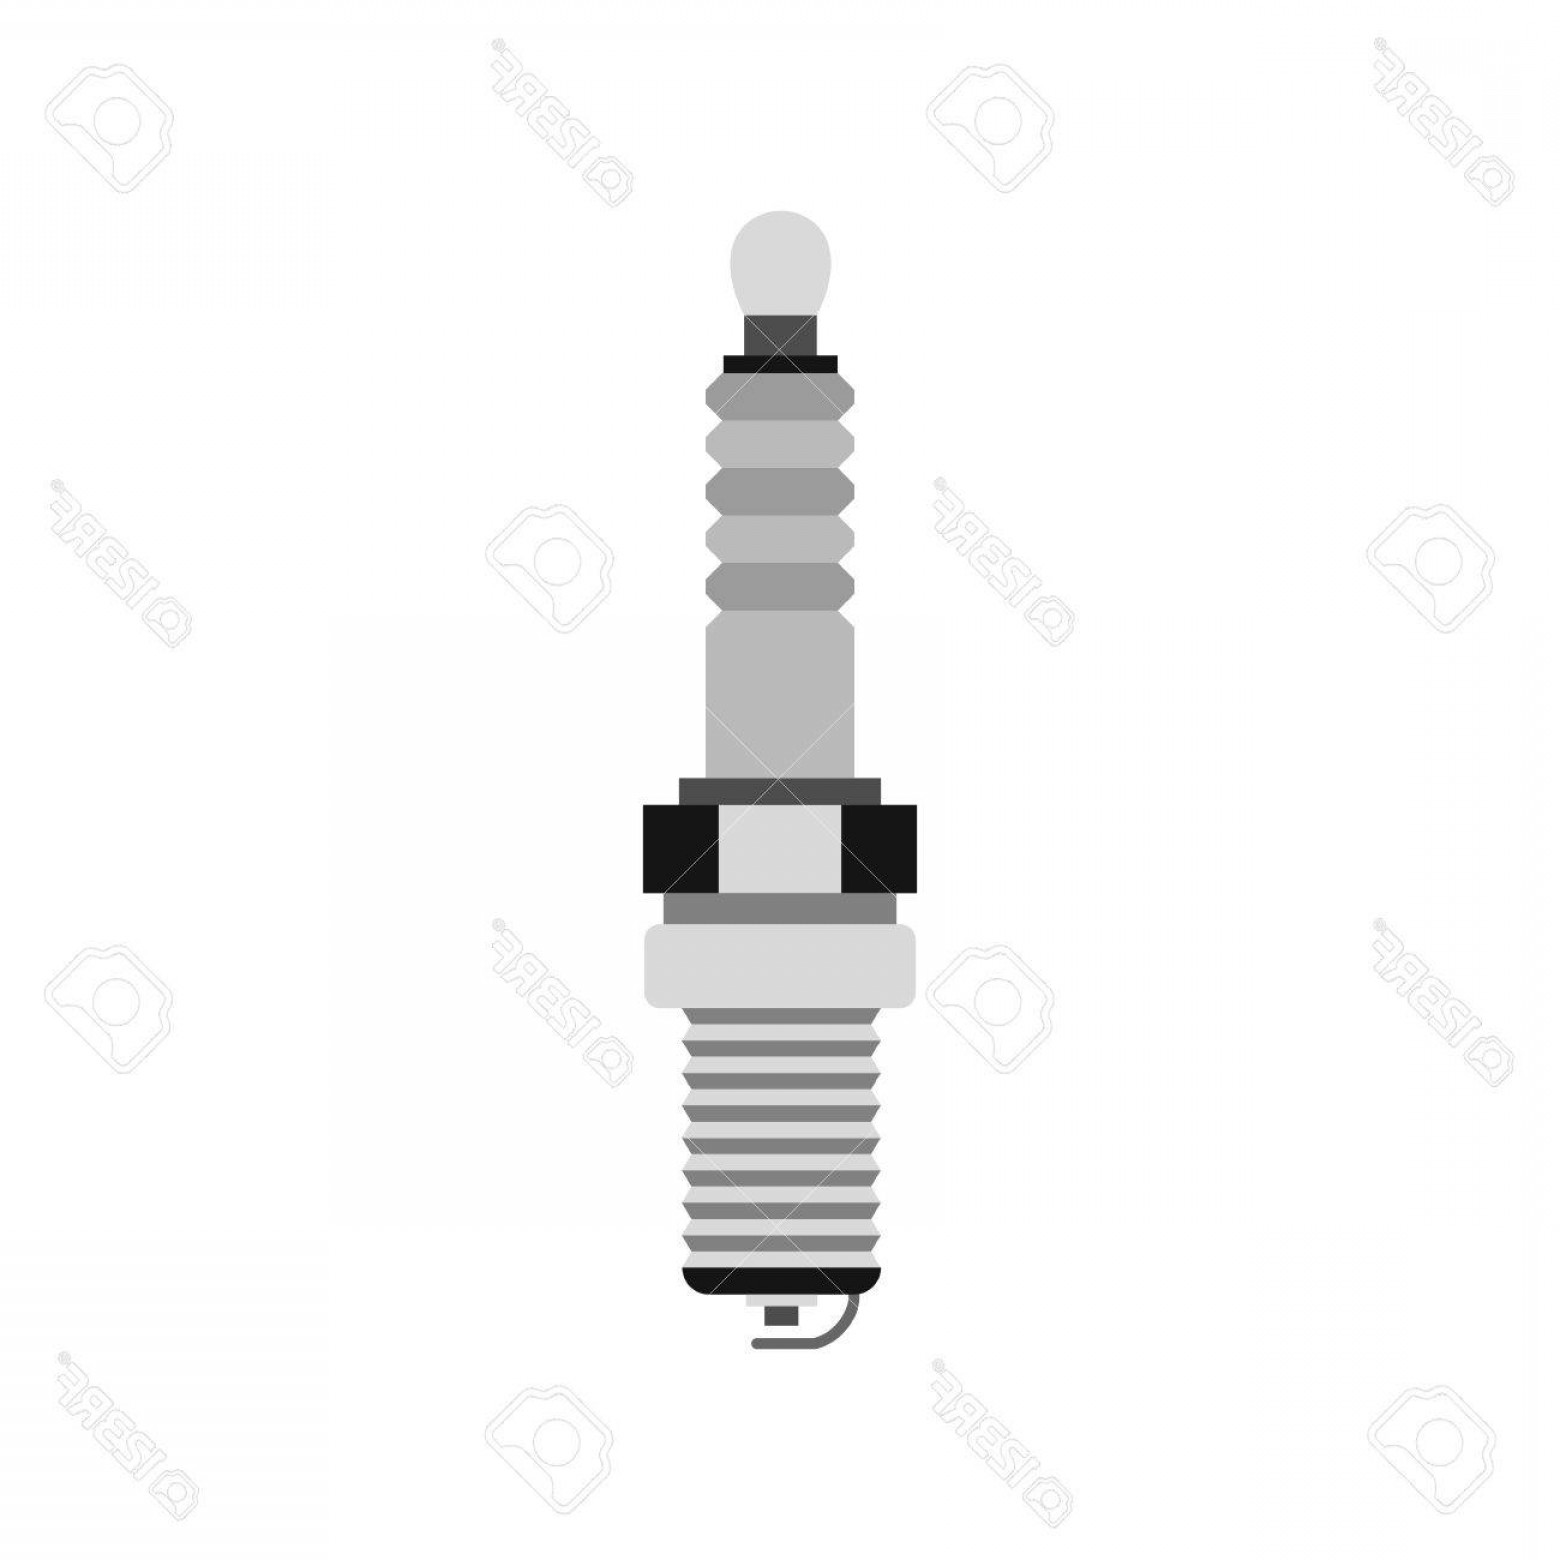 Spark Plug Vector: Photostock Vector Spark Plug Icon In Flat Style Isolated On White Background Mechanism Symbol Vector Illustration